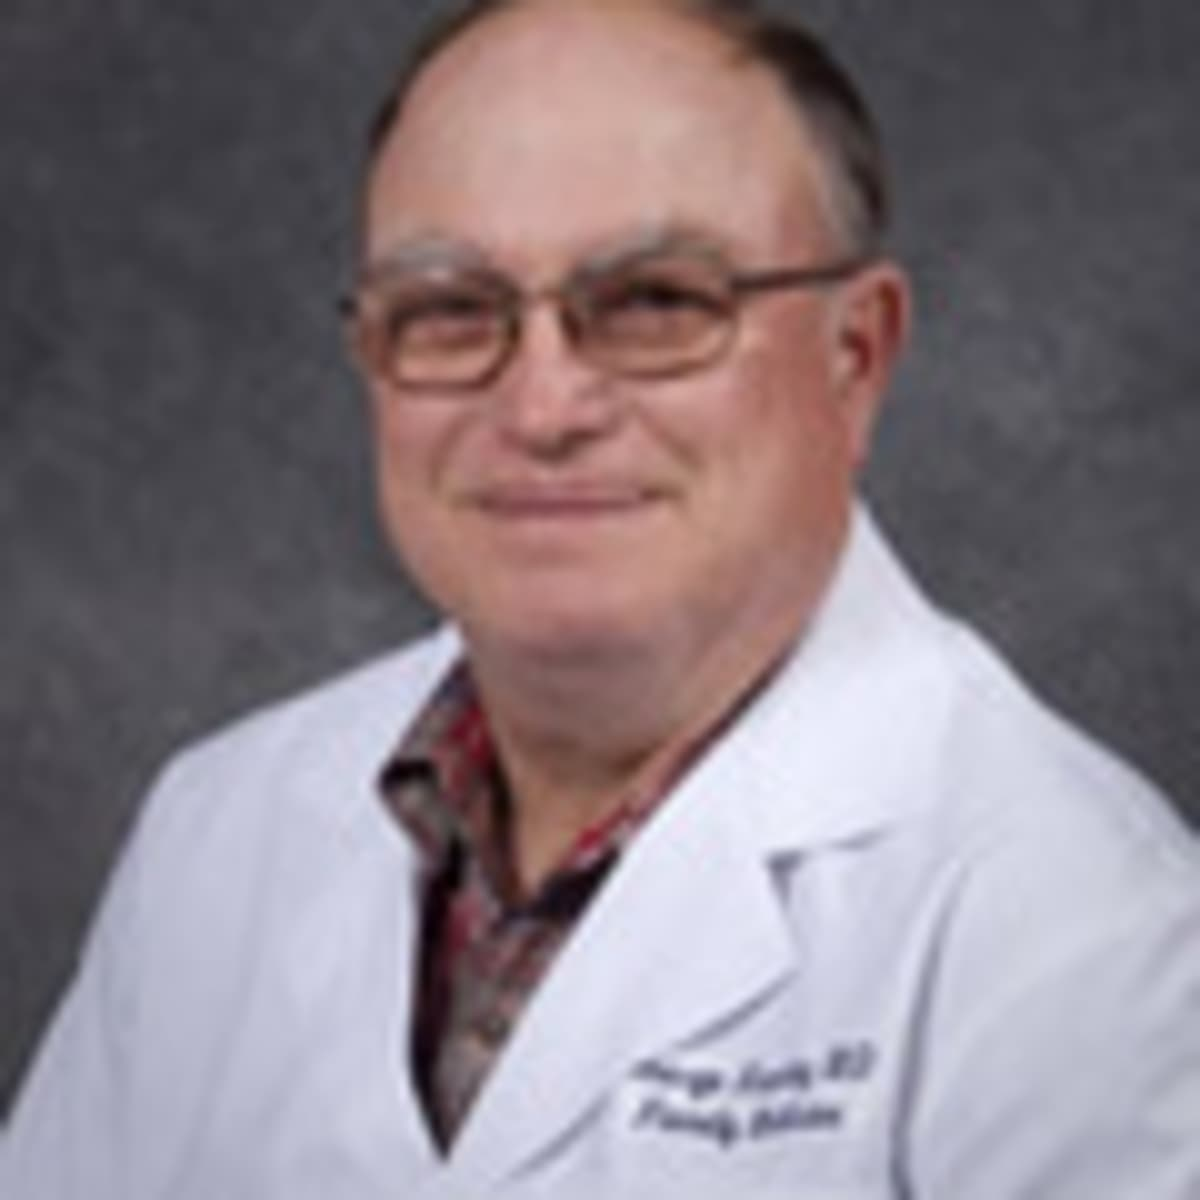 dr george handey md montgomery al family doctor